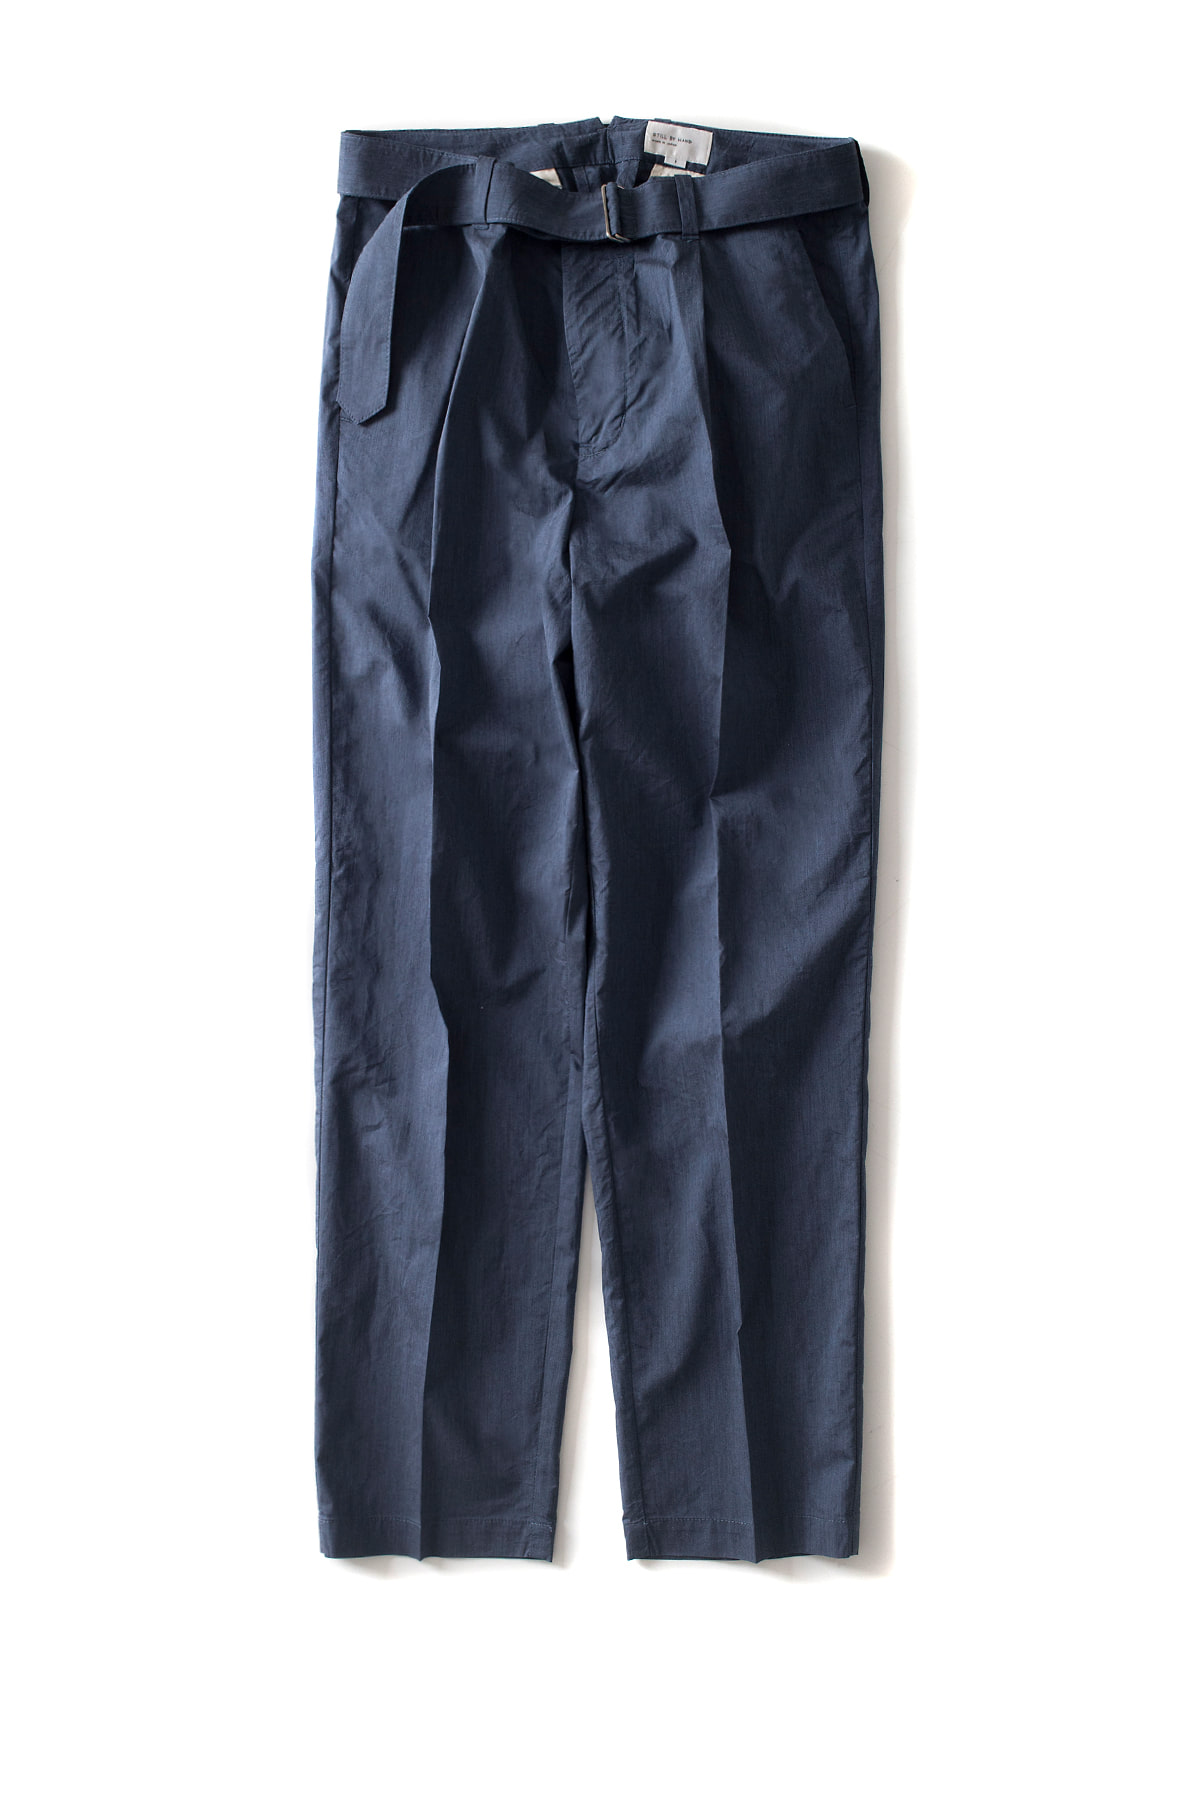 Still by Hand : Melange Face Belted Pants (Blue)